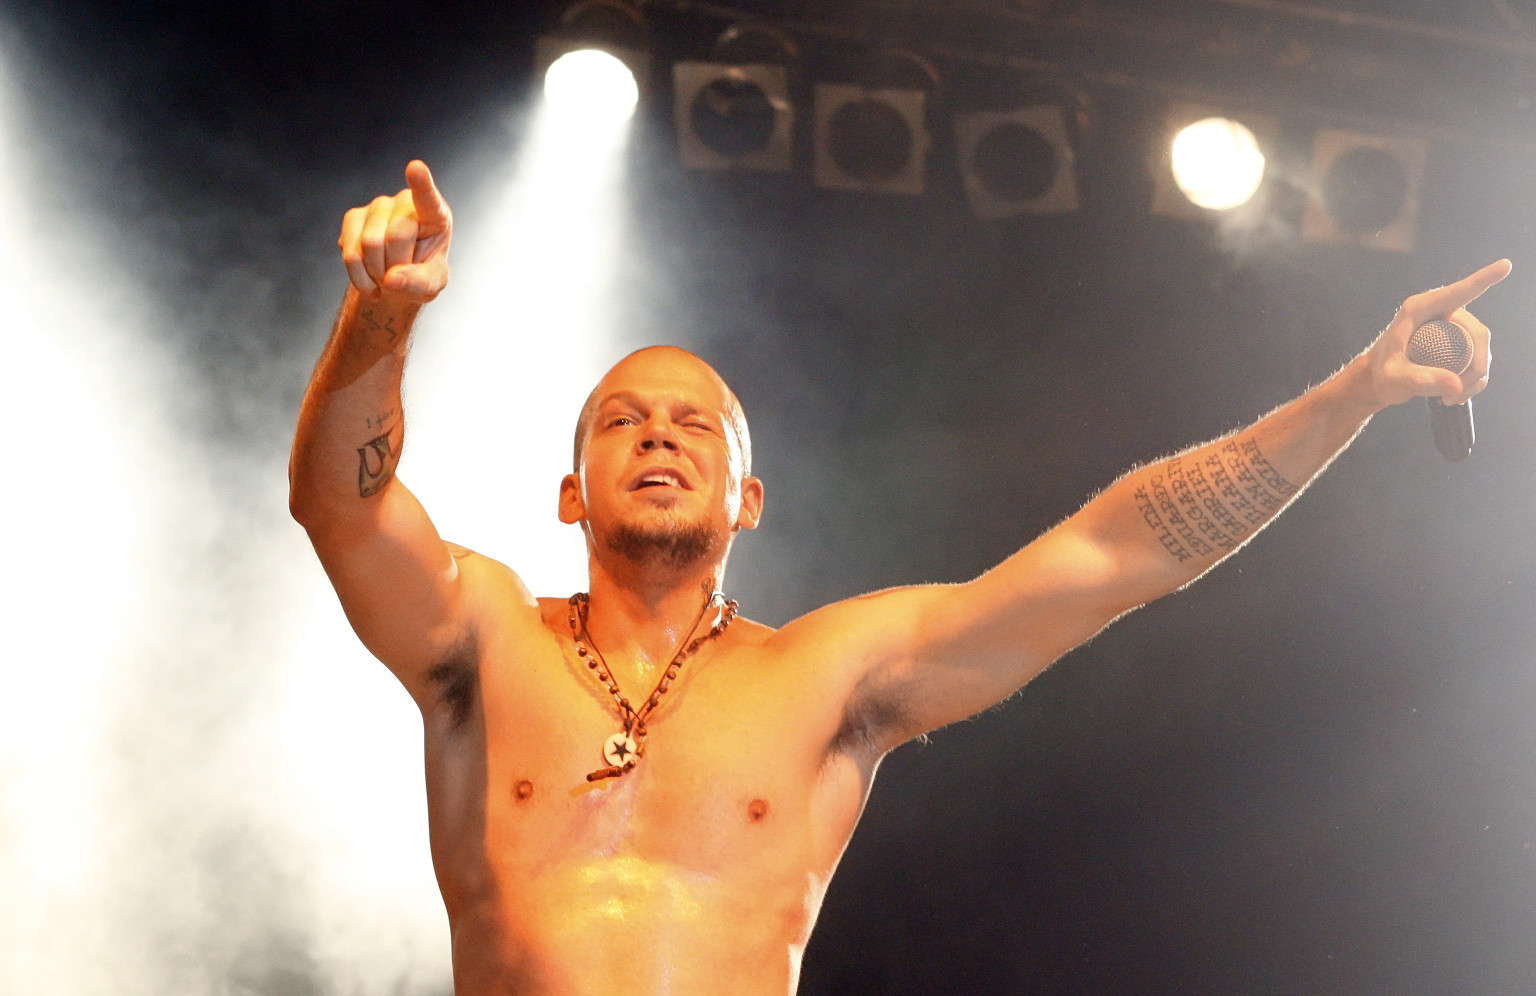 Rene Perez, Calle 13's Residente, Offers To Fly Edward ...